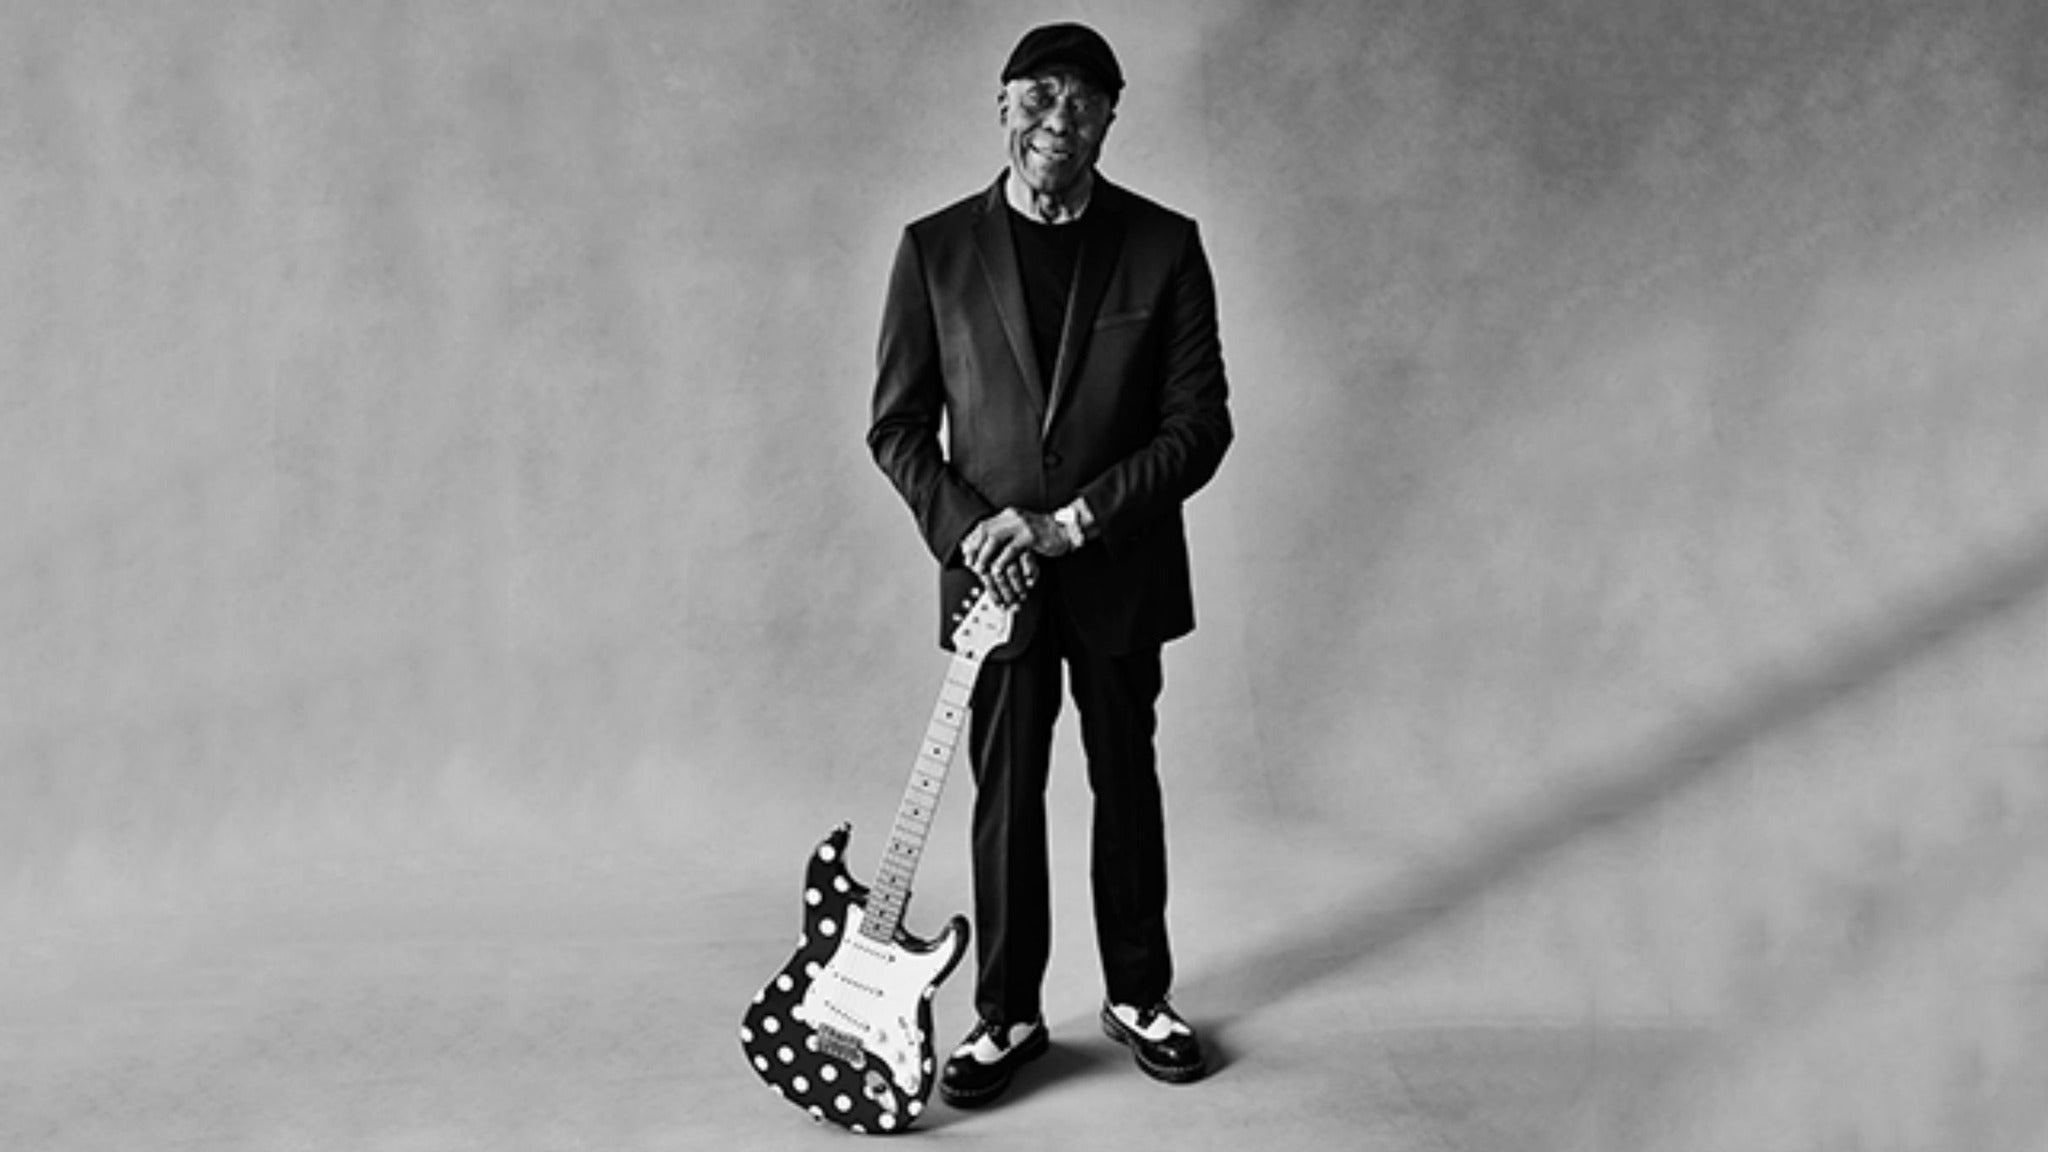 Buddy Guy at Carolina Theatre - Greensboro